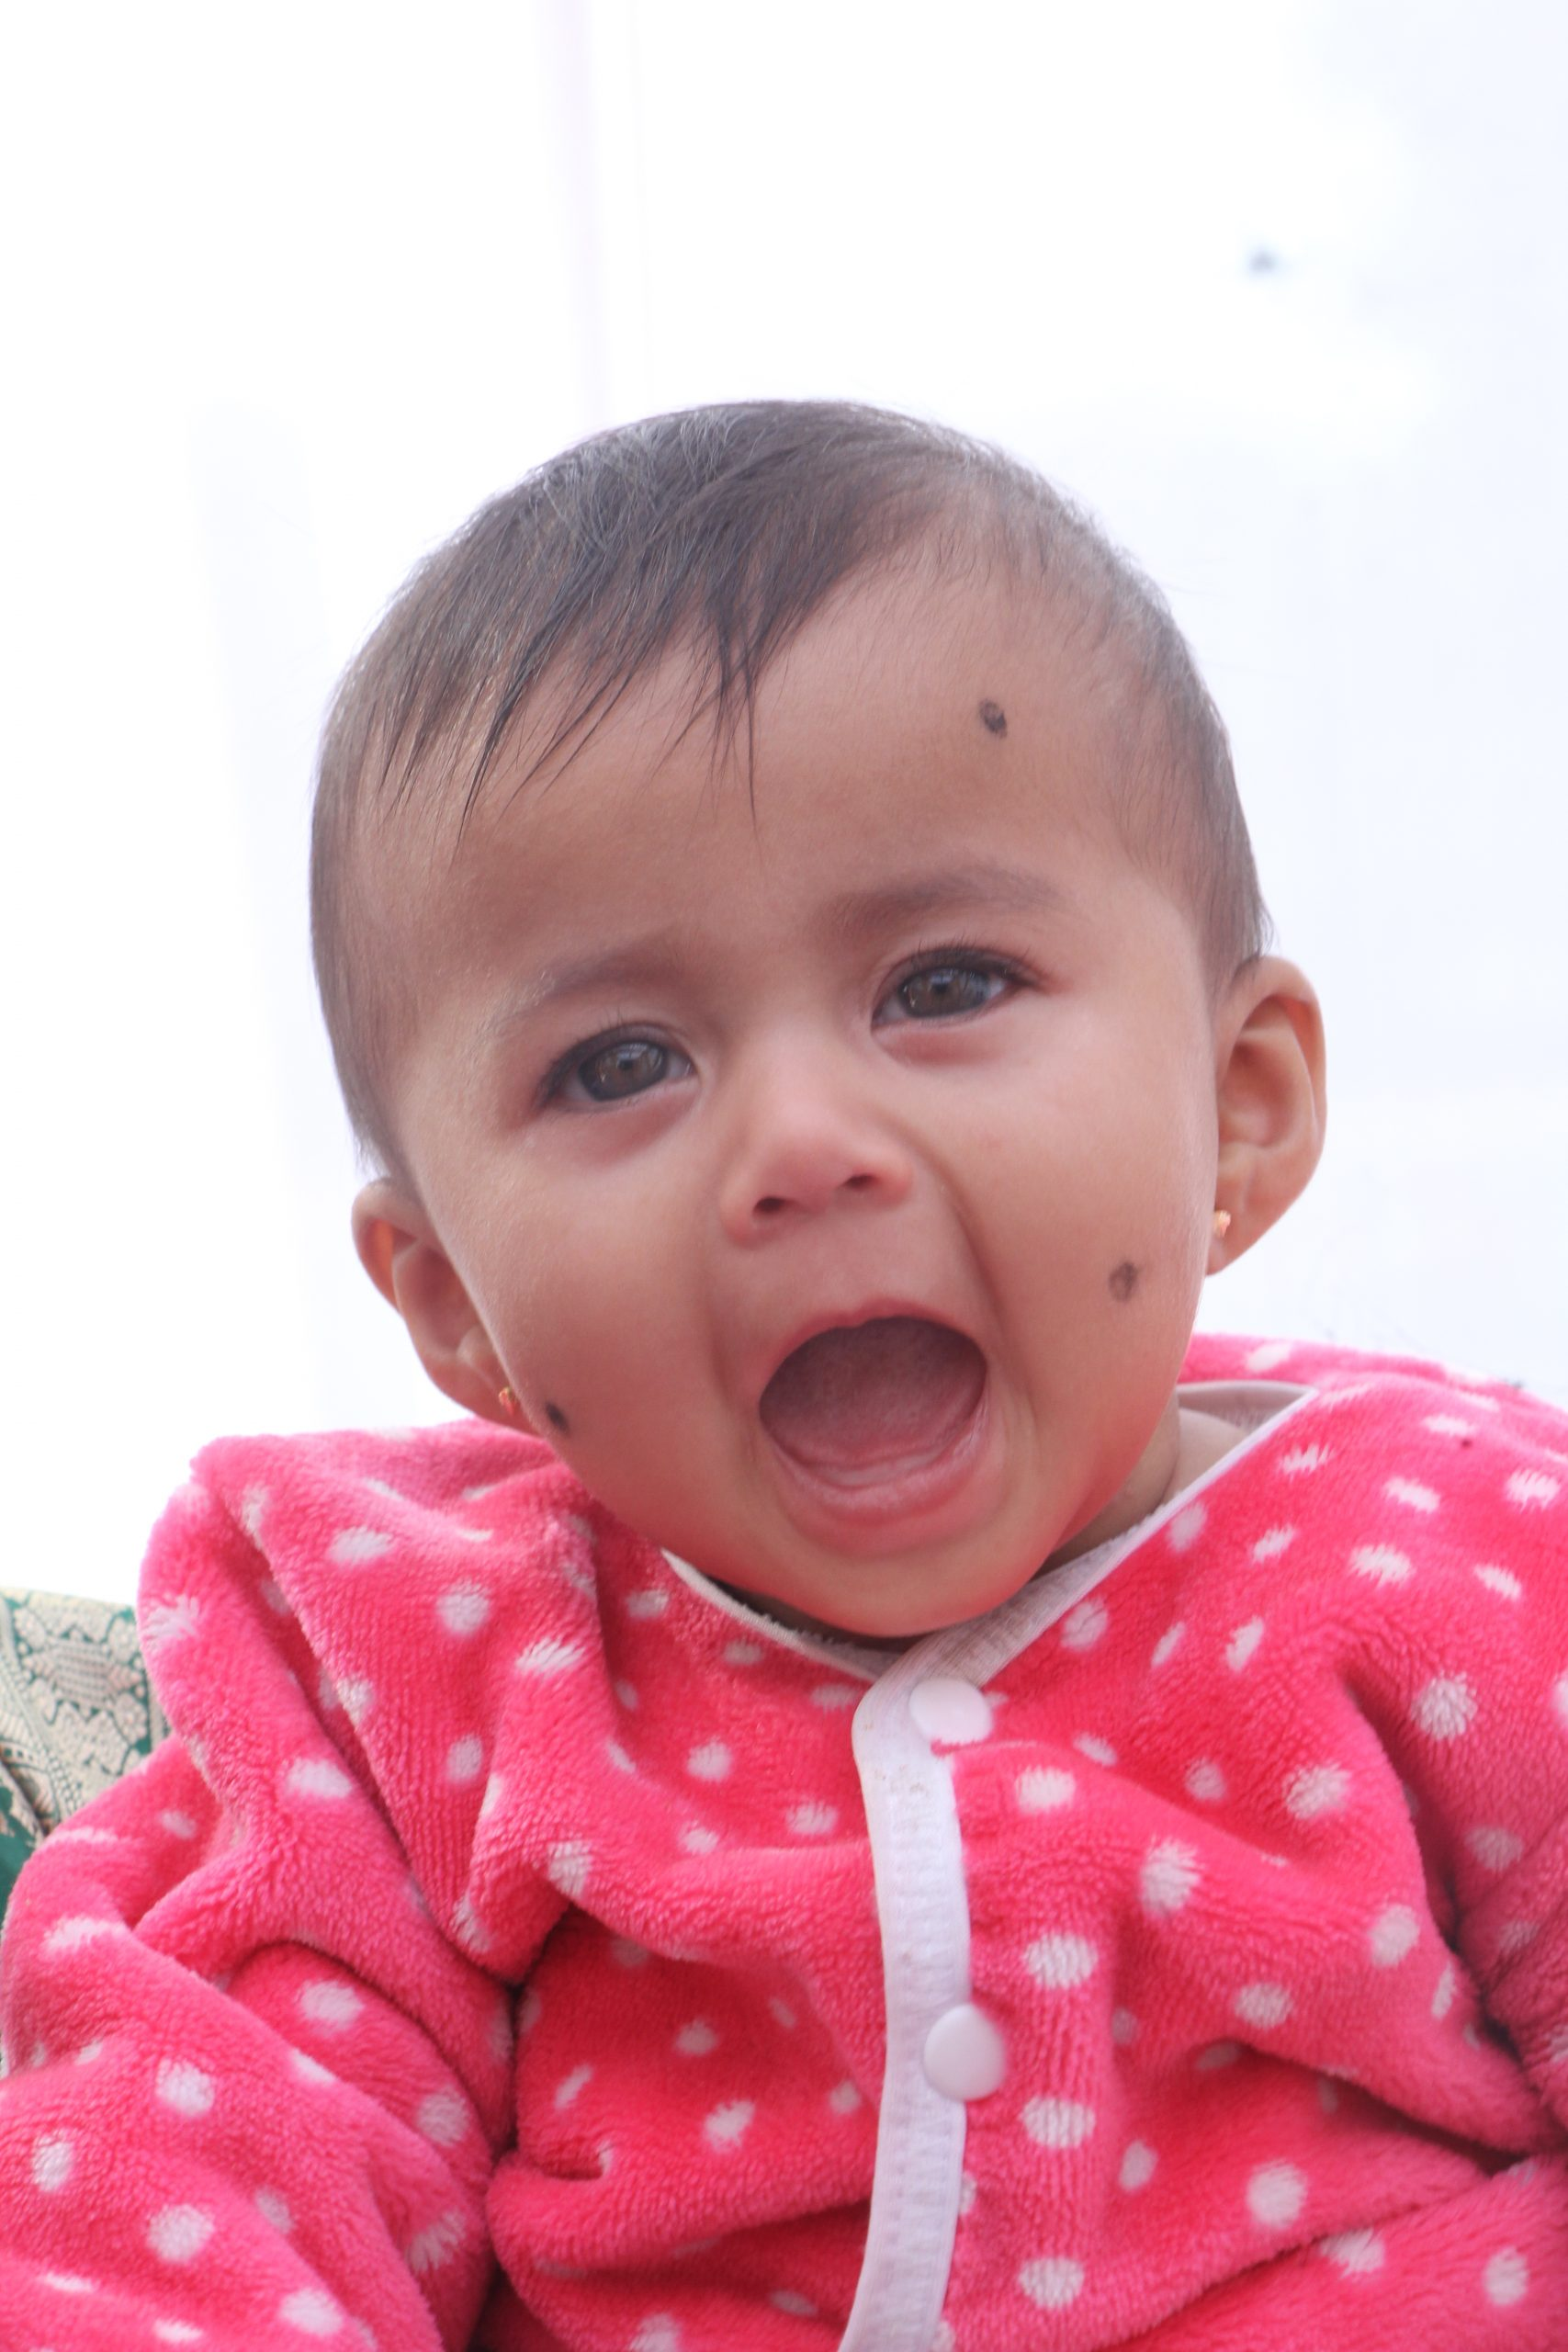 Baby with mouth wide open